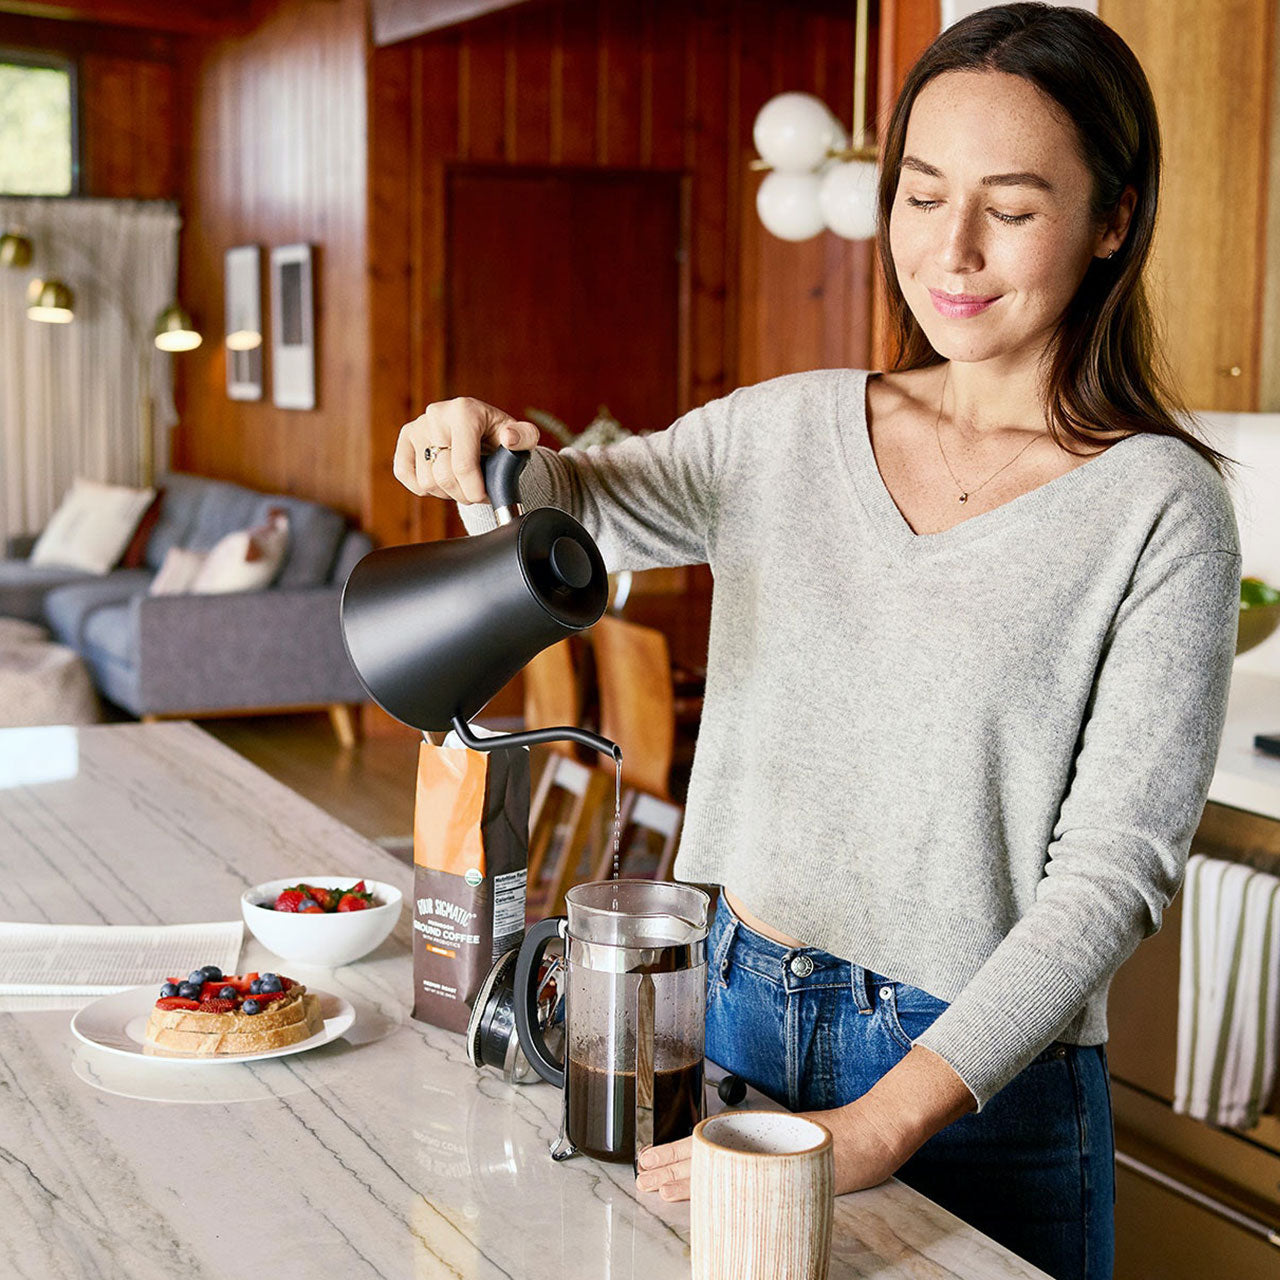 Woman pouring Four Sigmatic Mushroom Coffee